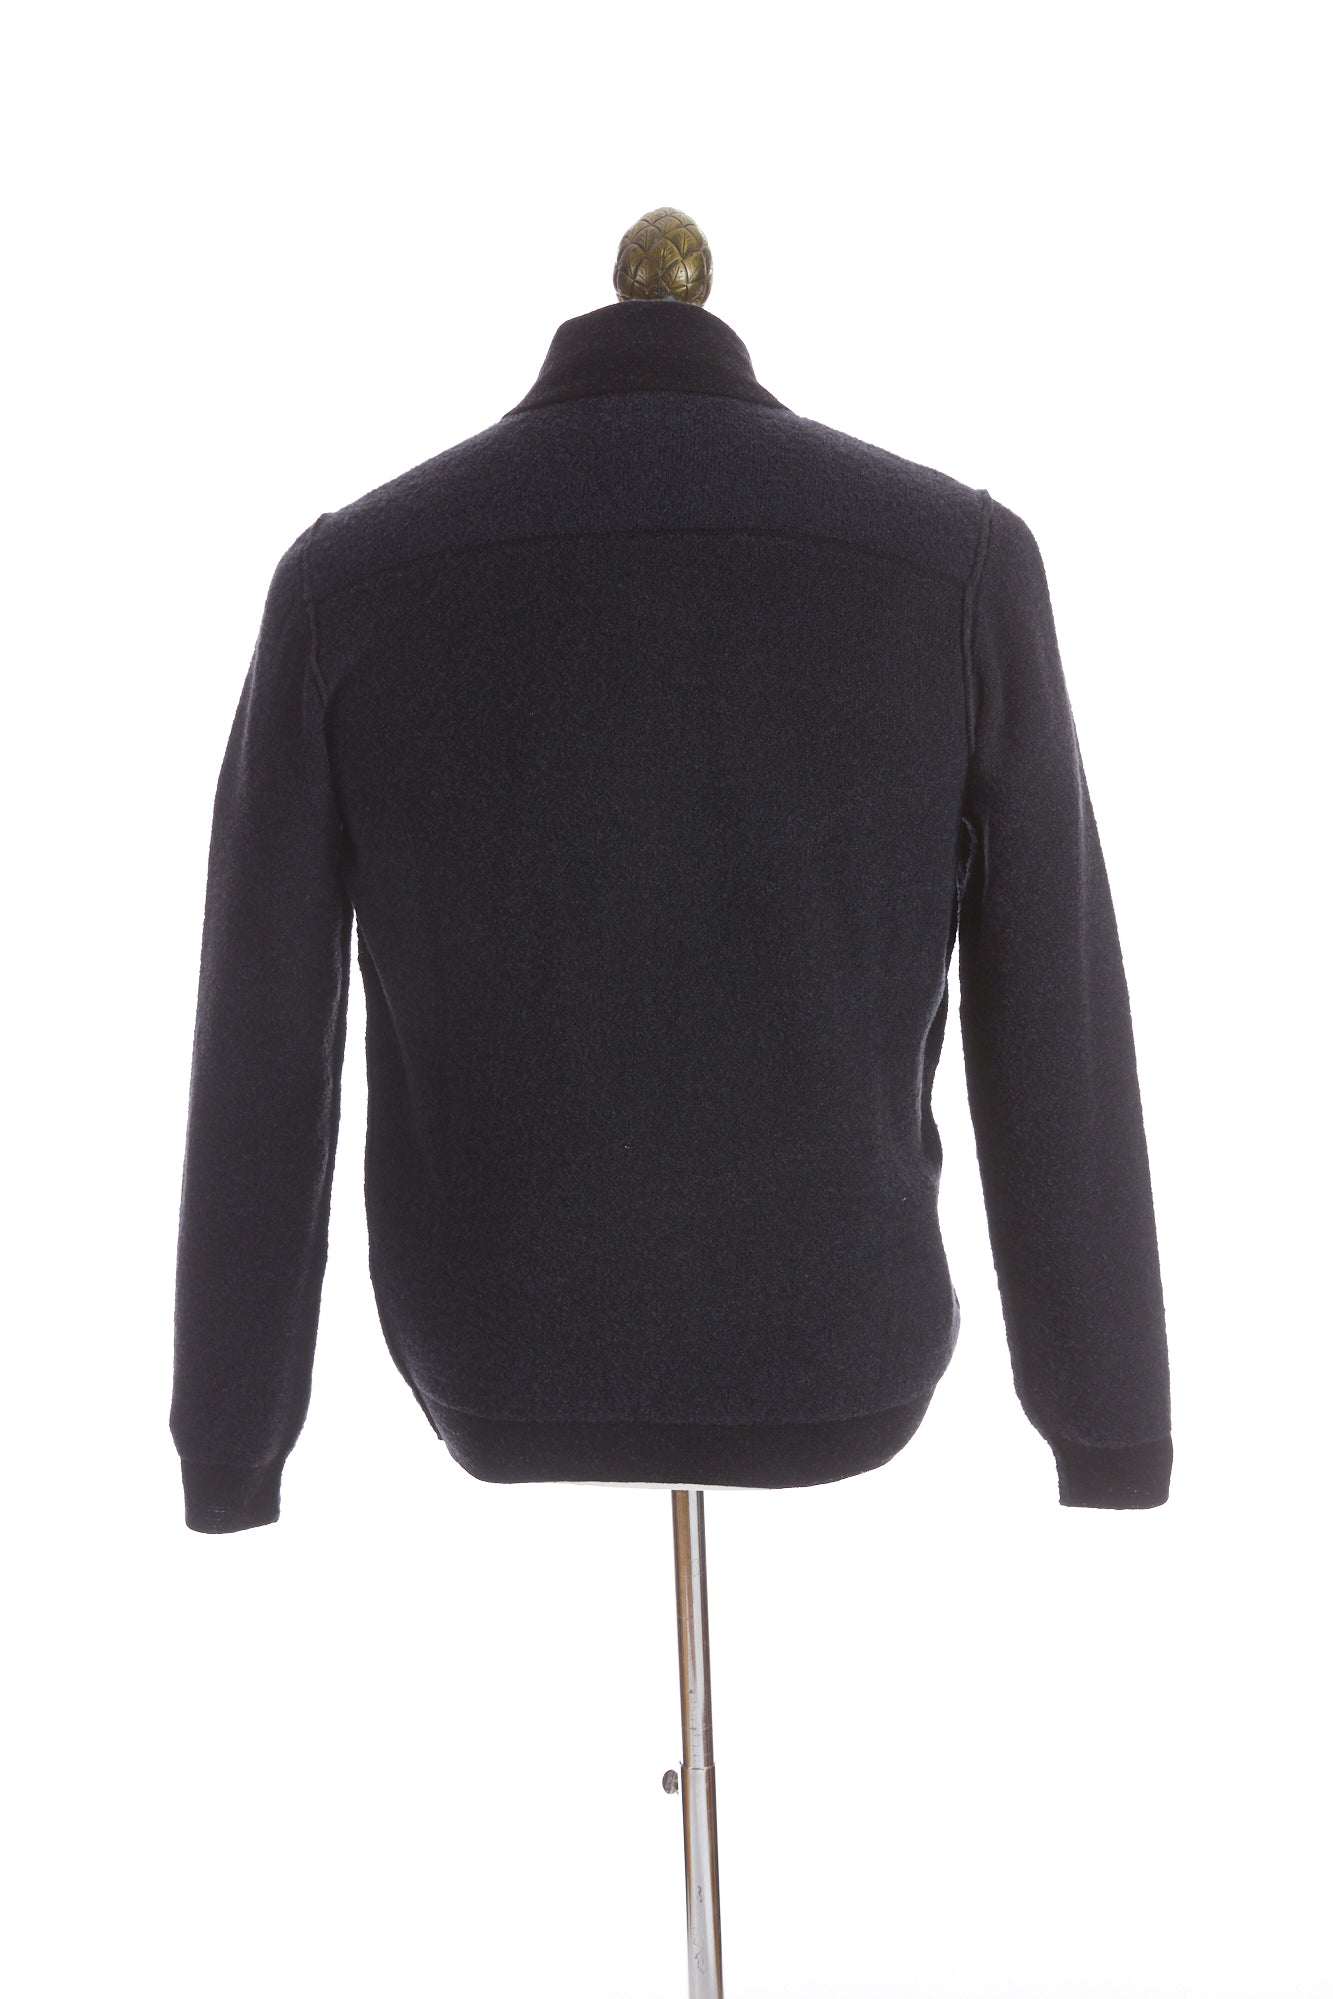 Phil Petter Navy Two-tone Wool Full Zip Sweater Back